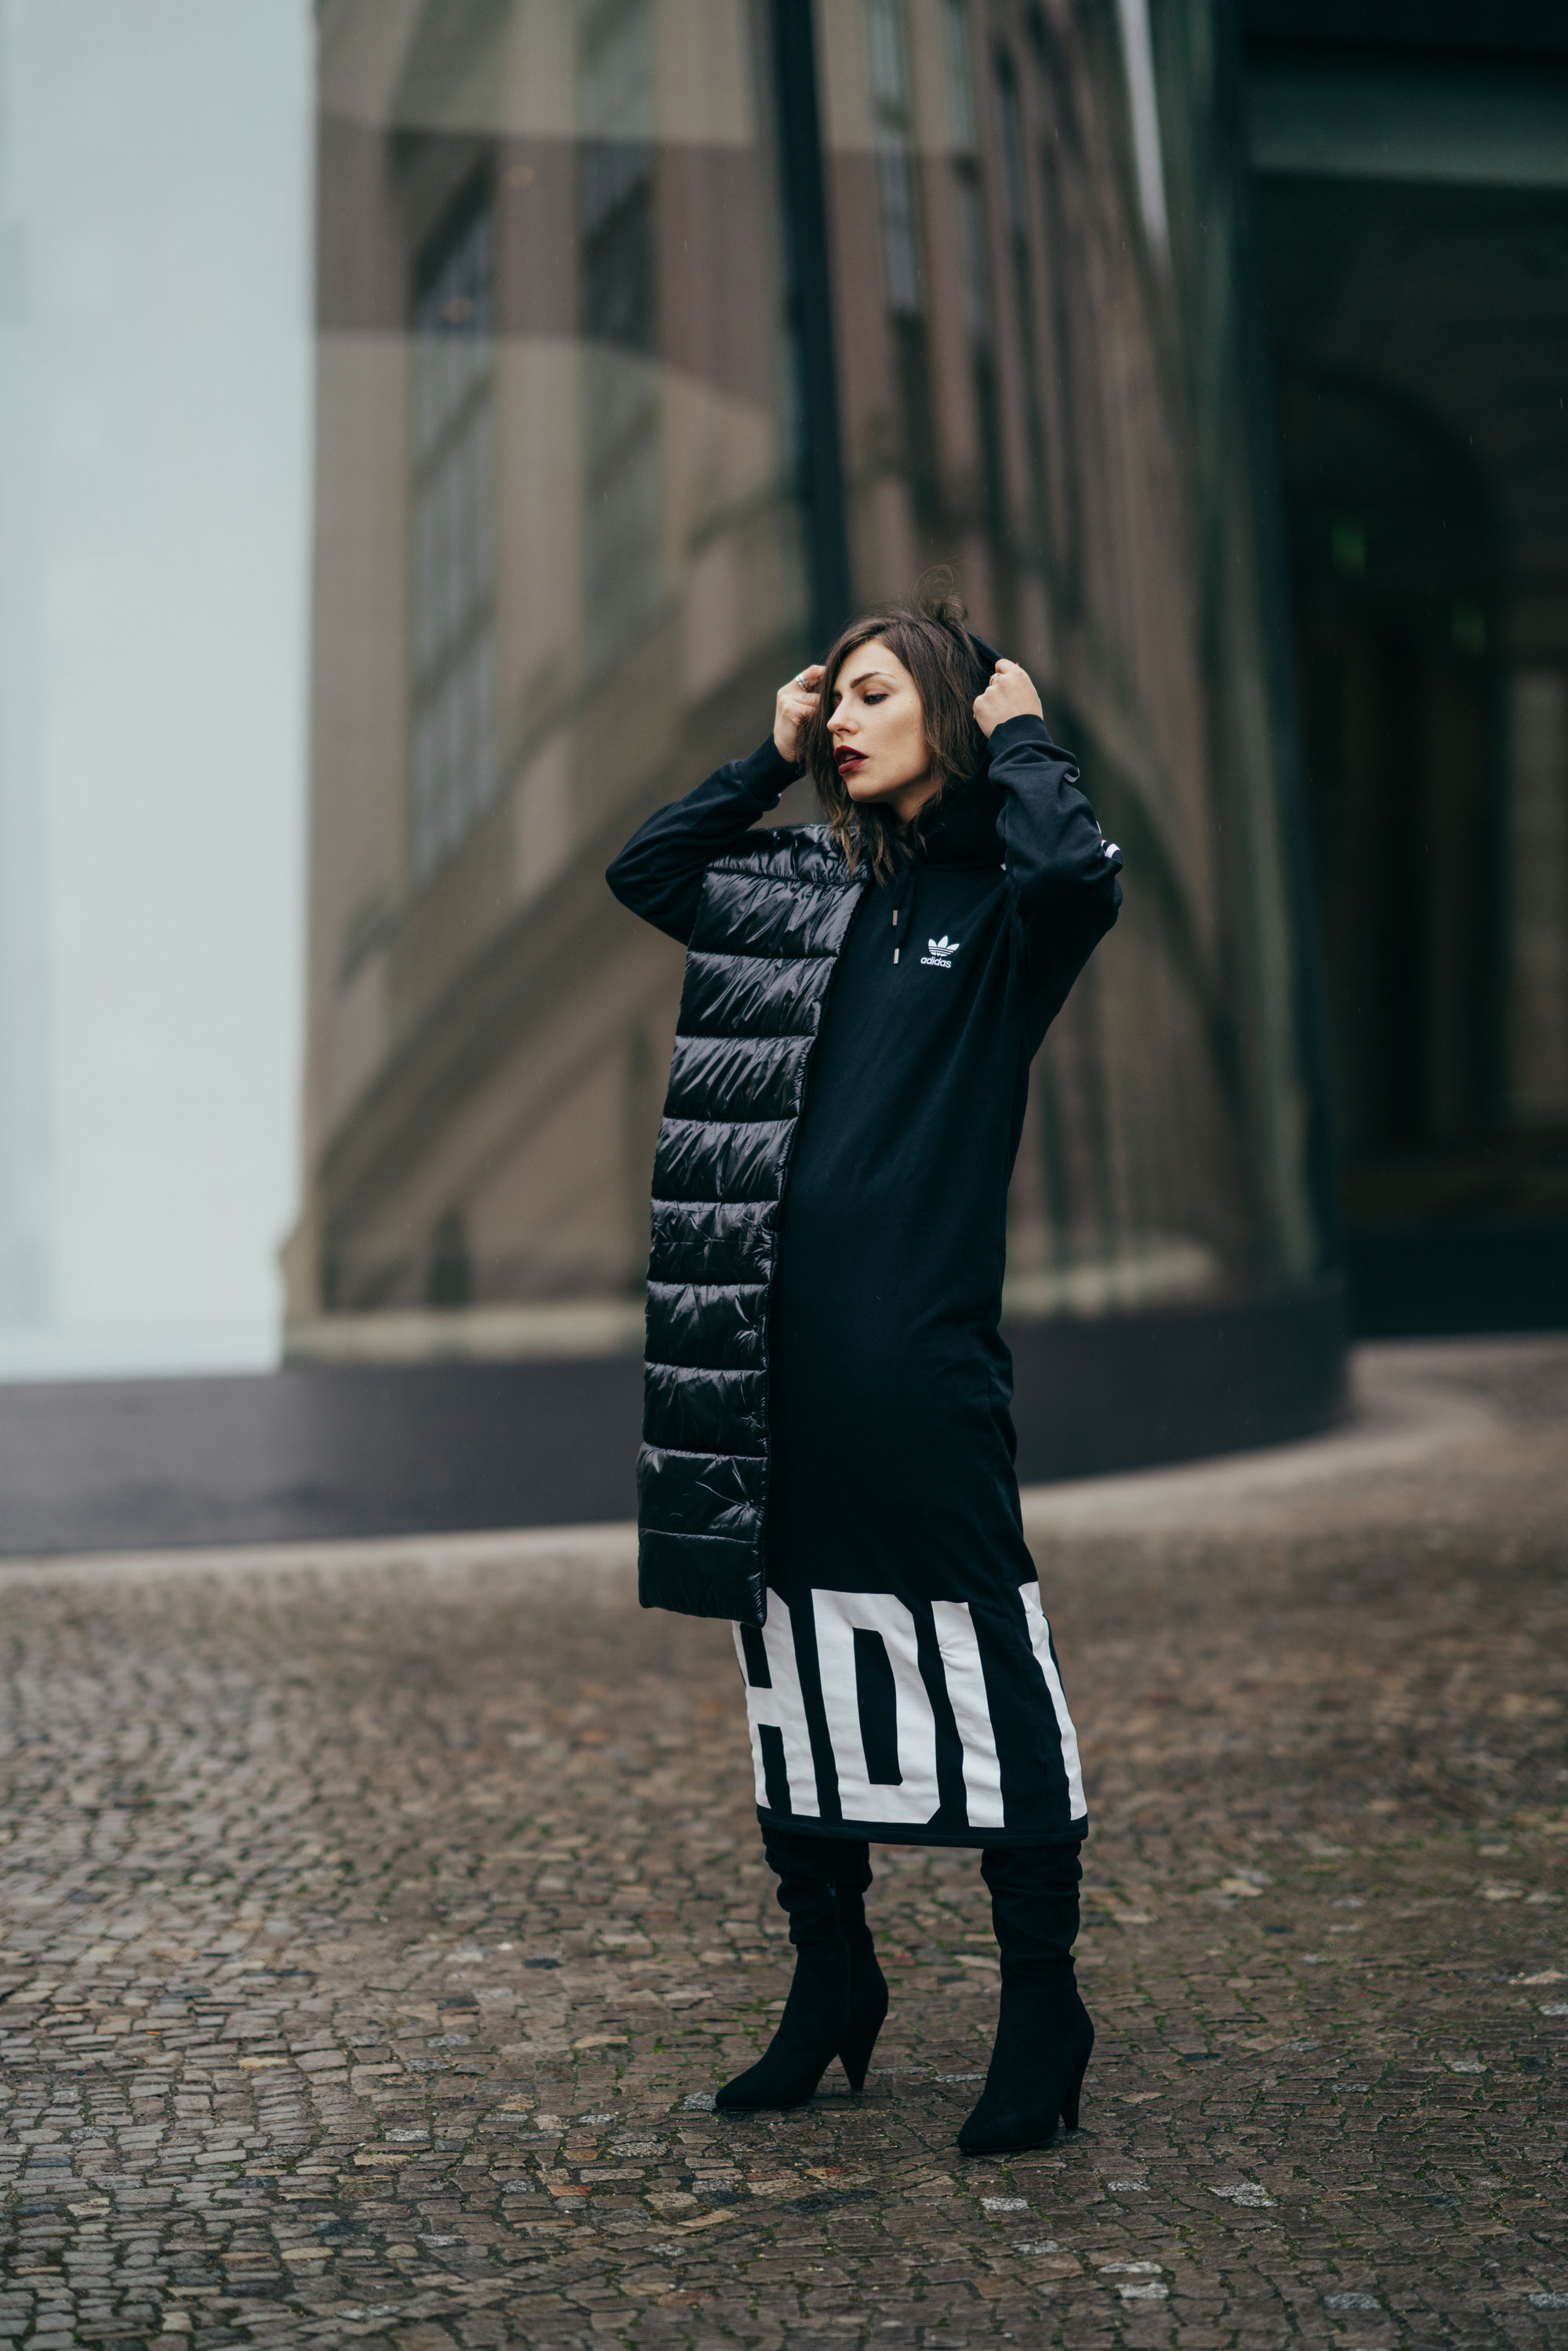 Zalando Style of the Day | Masha Sedgwick | Street Style | Mode | Marken: Topshop, Ivy Revel, Vans, Selected Femme, The Kooples, Holzweiler | Berlin | Street Wear zum Nachstylen | Alltag | Wochenrückblick | 2018 | Adidas Kleid